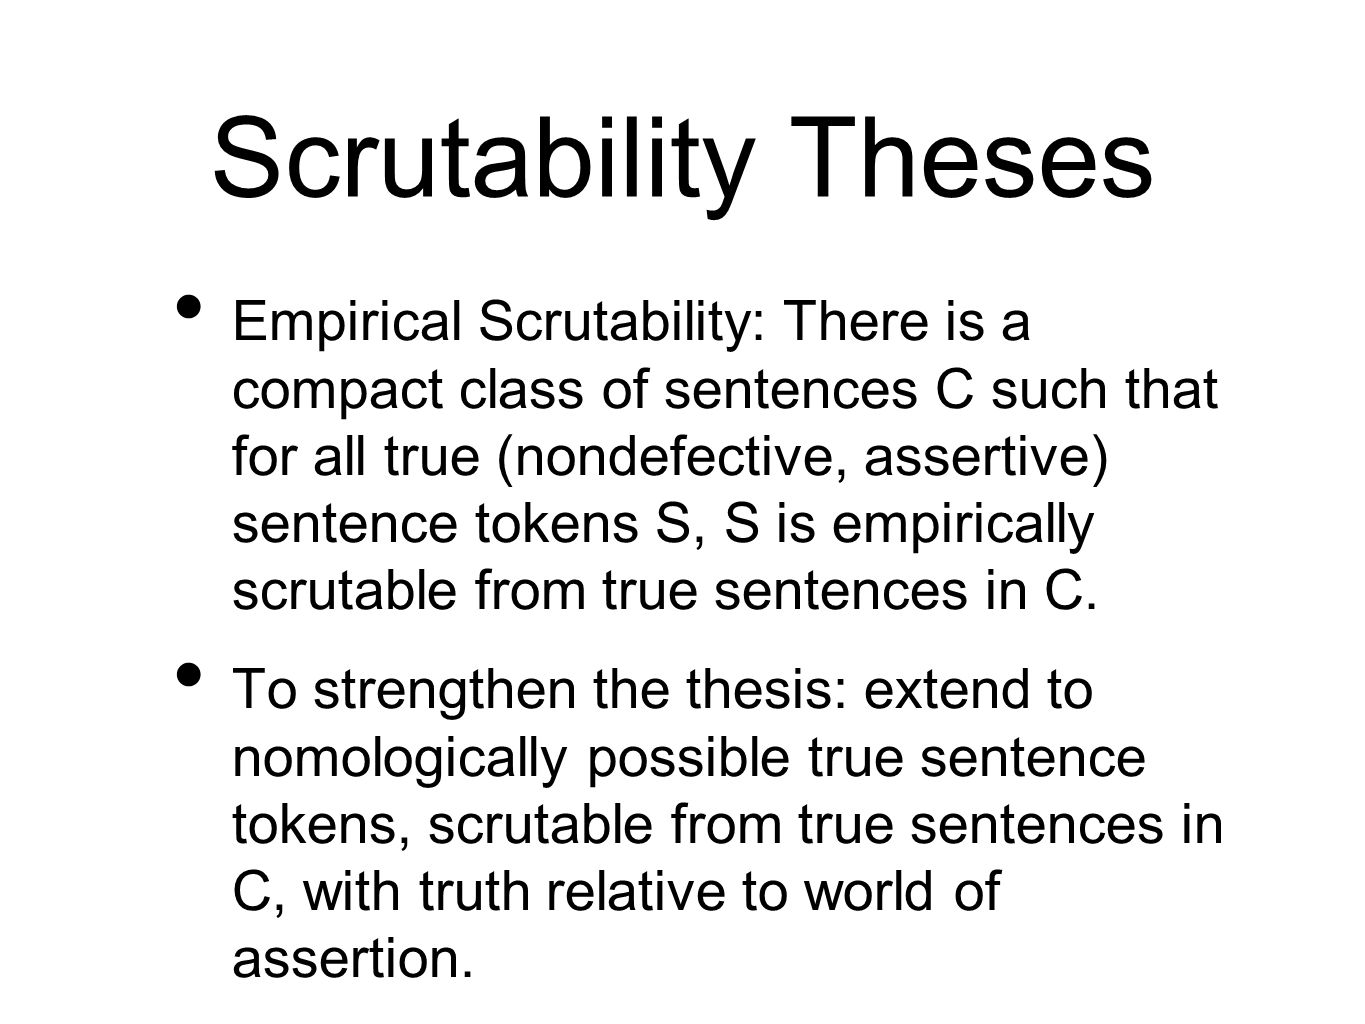 Scrutability Theses Empirical Scrutability: There is a compact class of sentences C such that for all true (nondefective, assertive) sentence tokens S, S is empirically scrutable from true sentences in C.